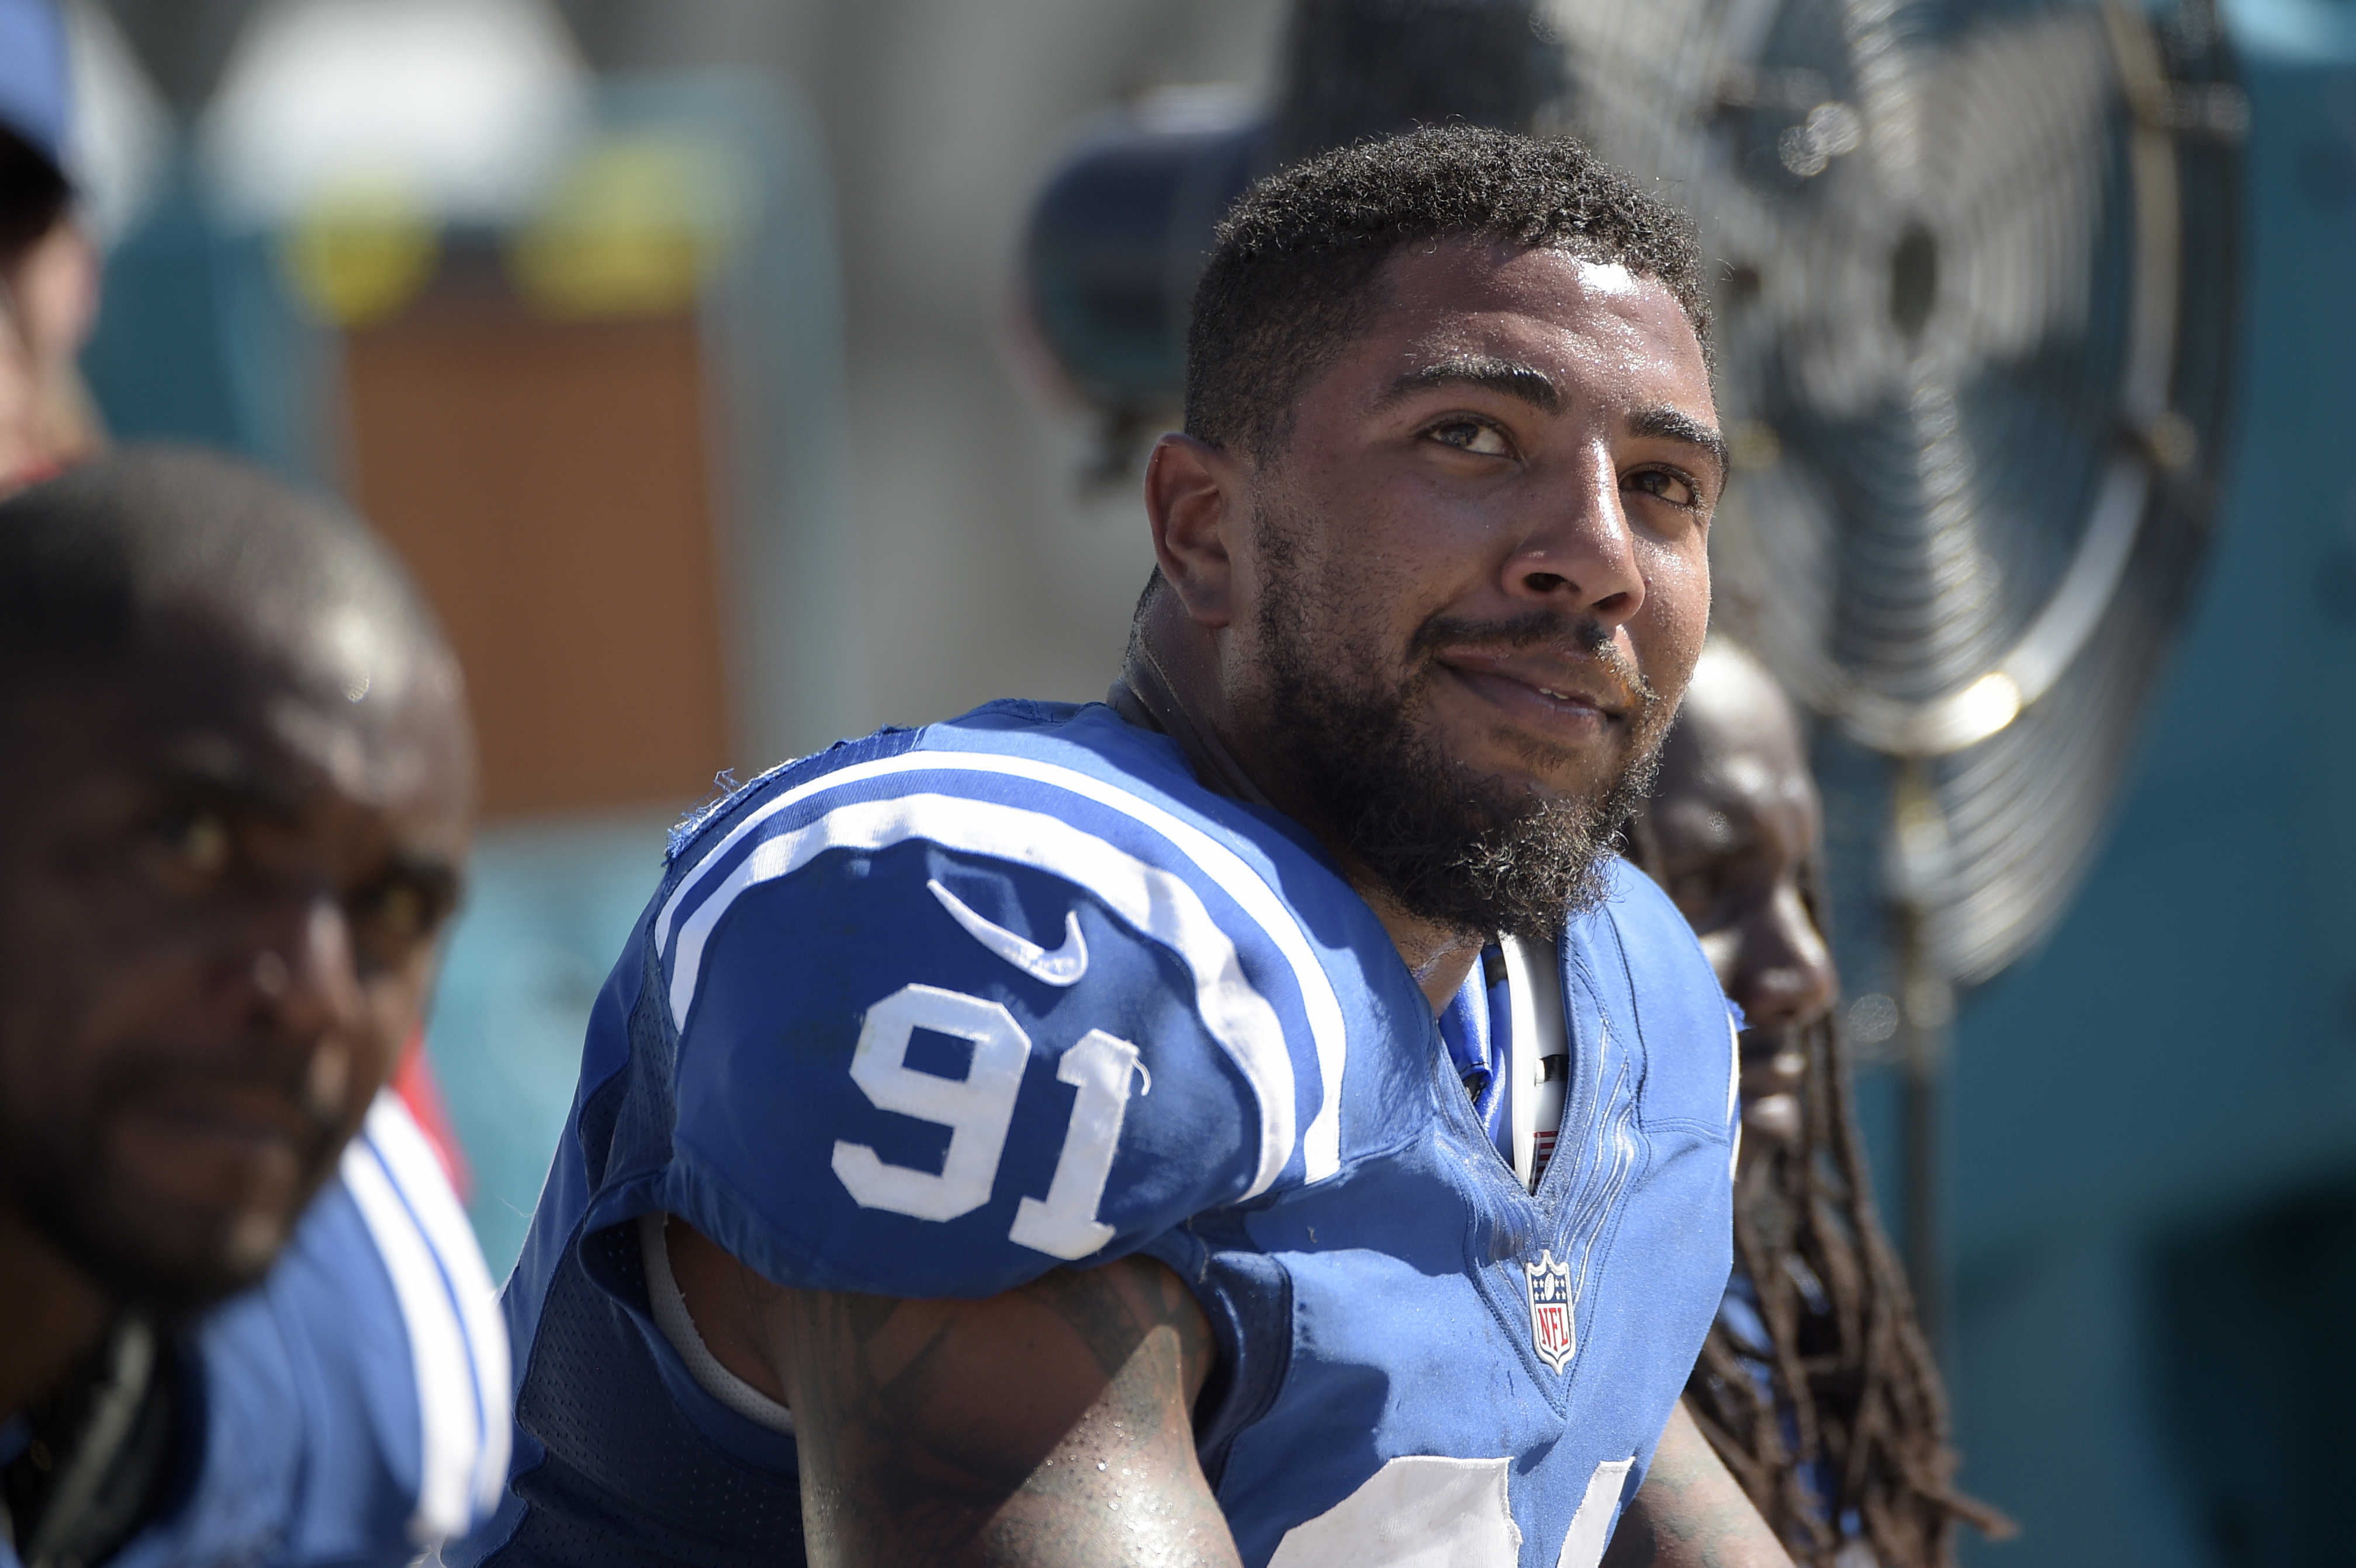 Indianapolis Colts linebacker Jonathan Newsome (91) and running back Ahmad Bradshaw, left, watch from the bench during the second half of an NFL football game against the Jacksonville Jaguars in Jacksonville, Fla., Sunday, Sept. 21, 2014.(AP Photo/Phelan